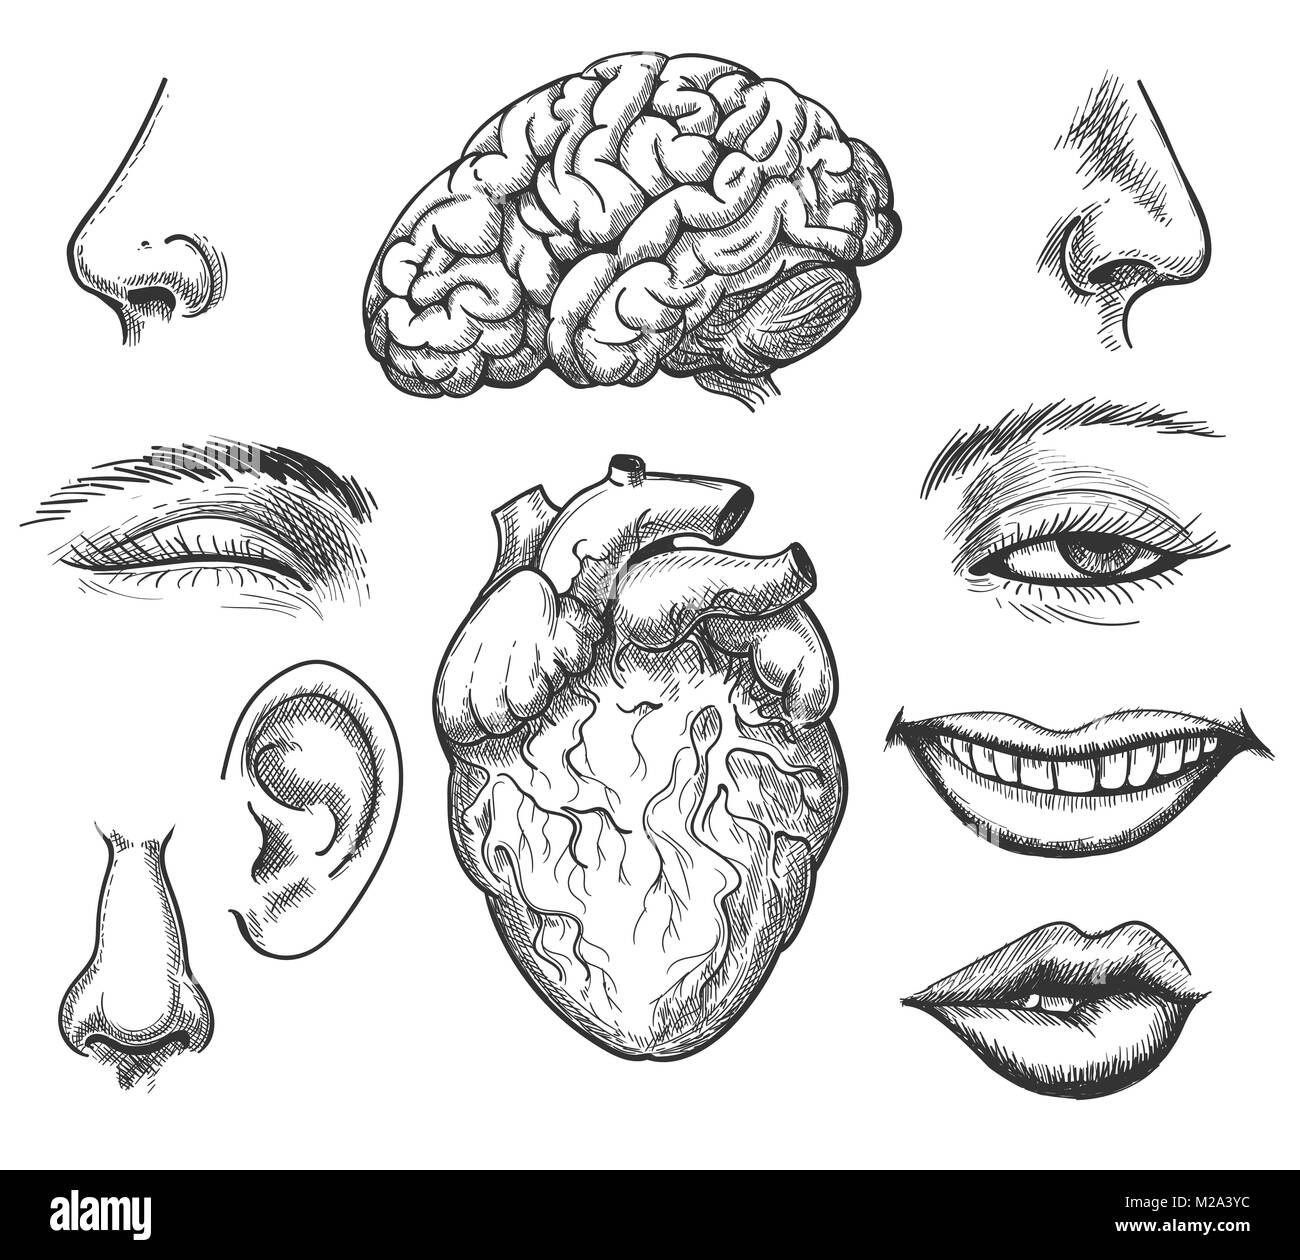 hight resolution of human head organ set like eye nose and mouth and